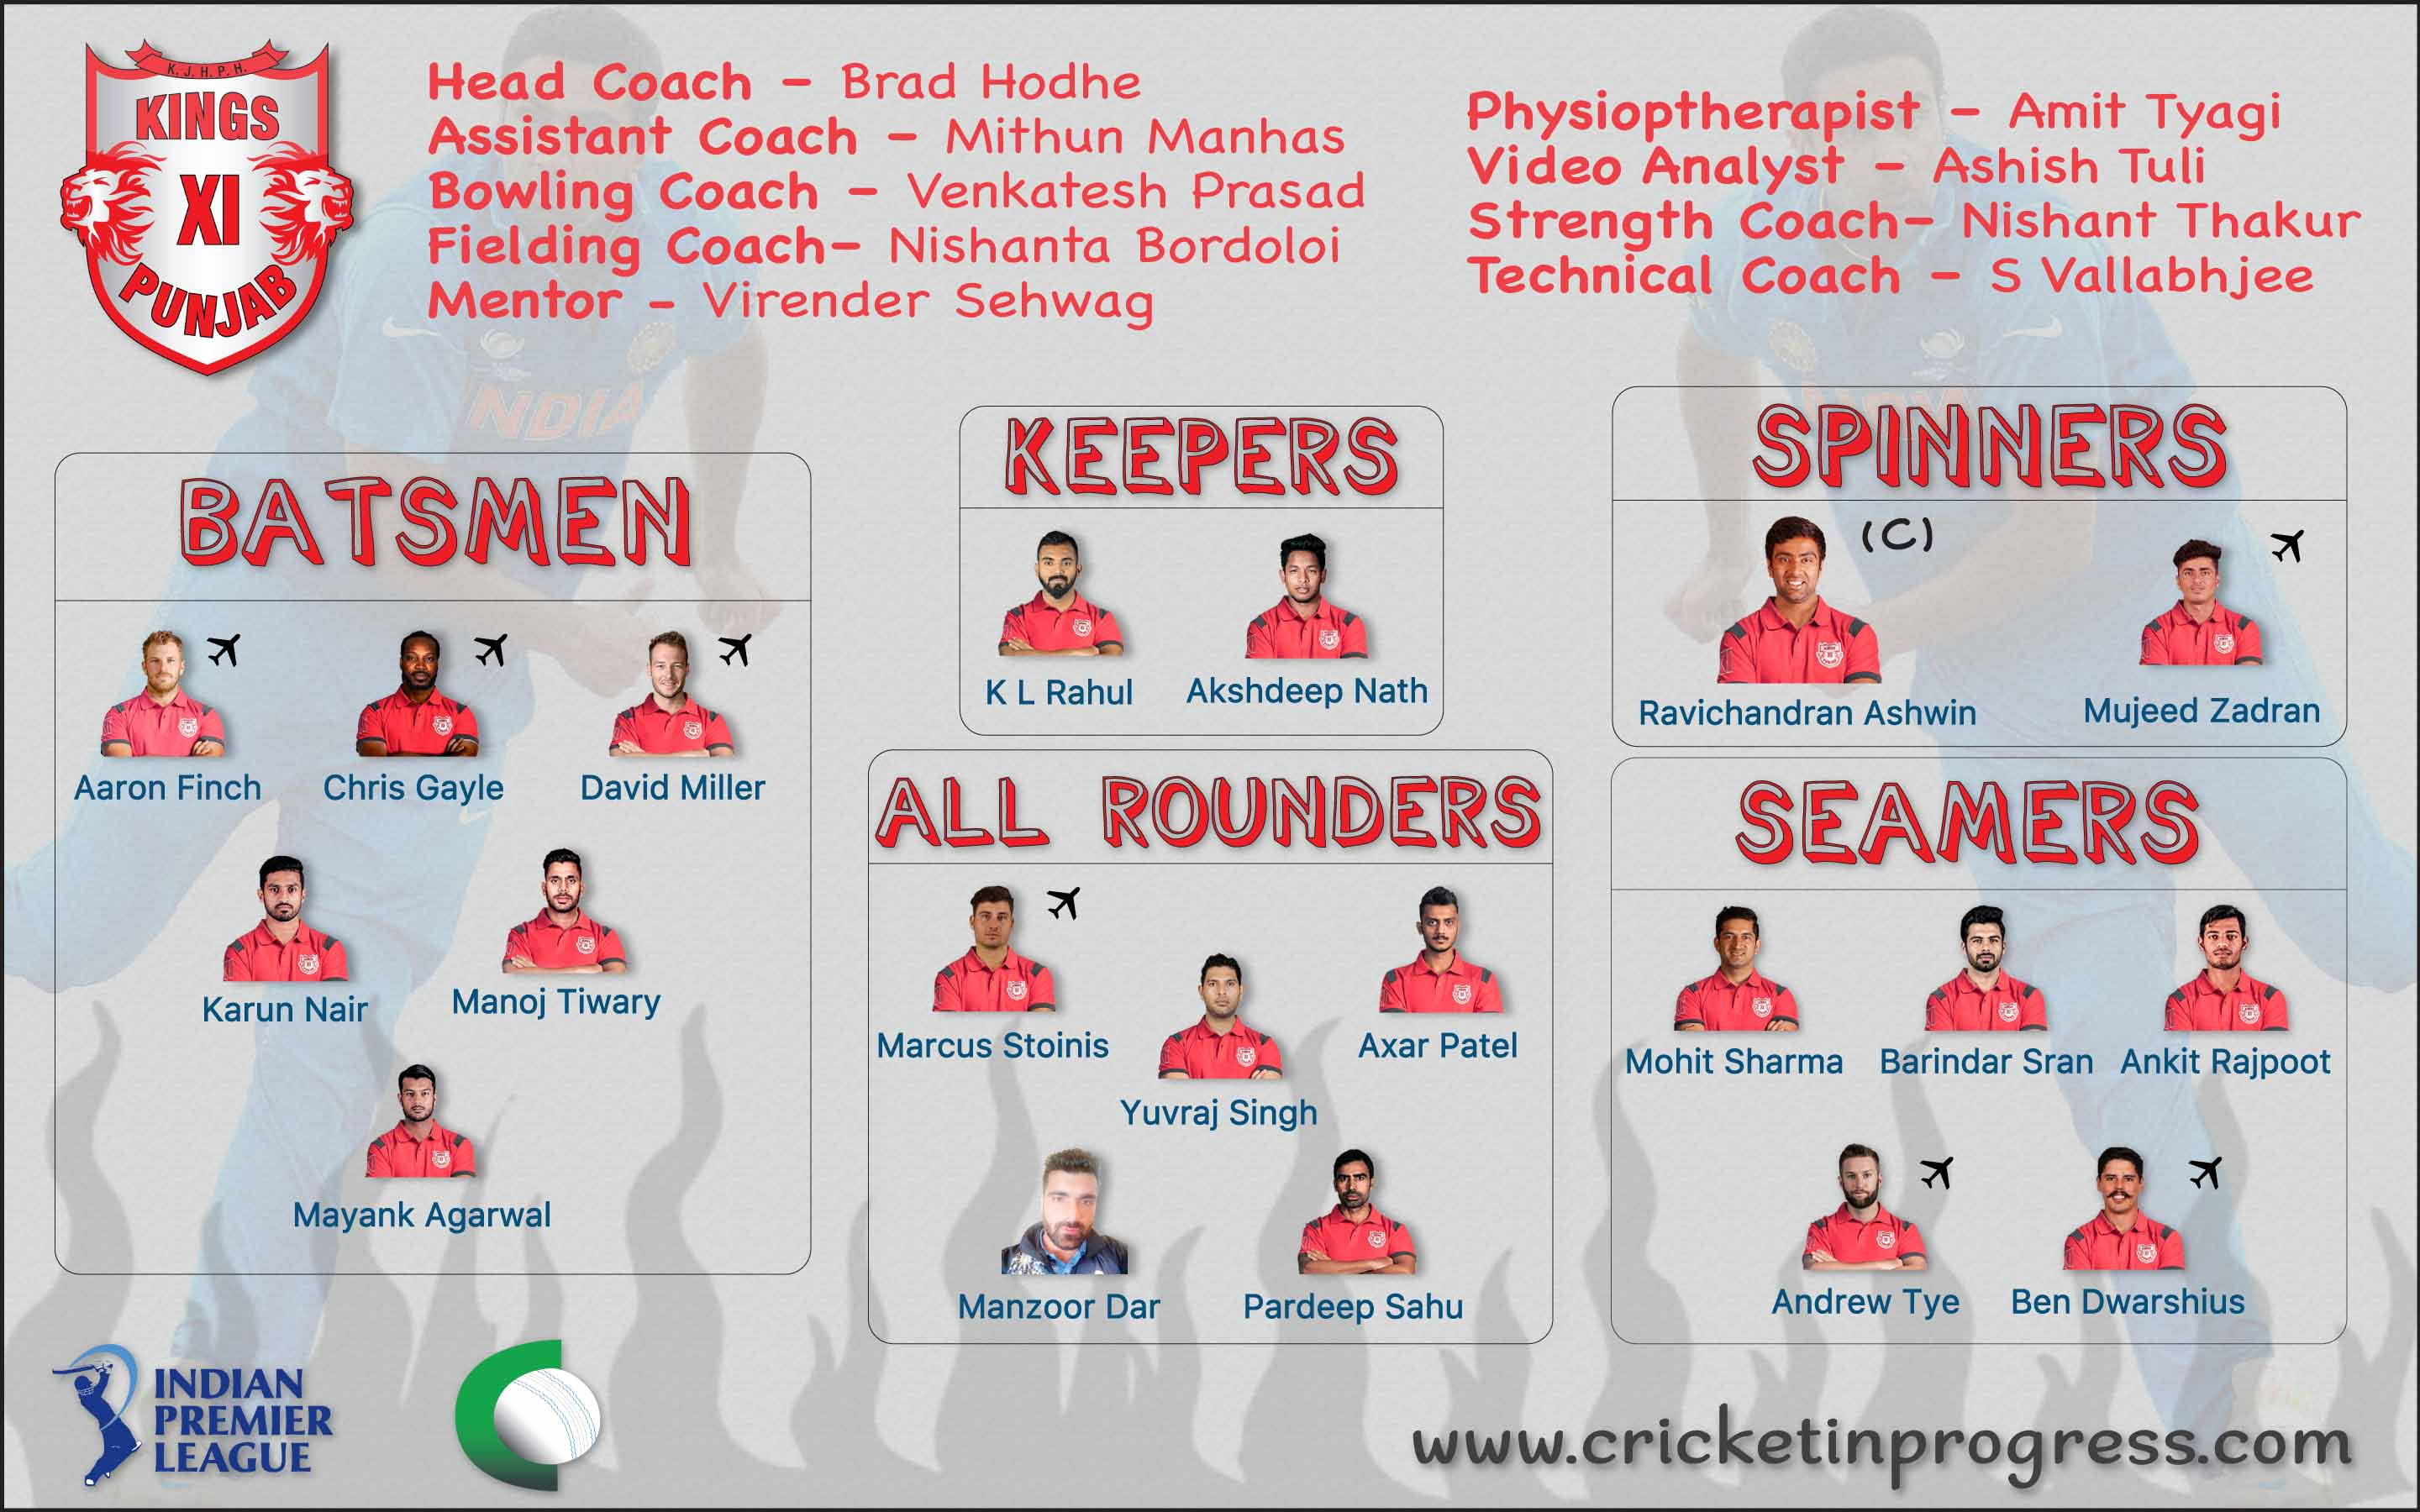 KXIP Roster 2018